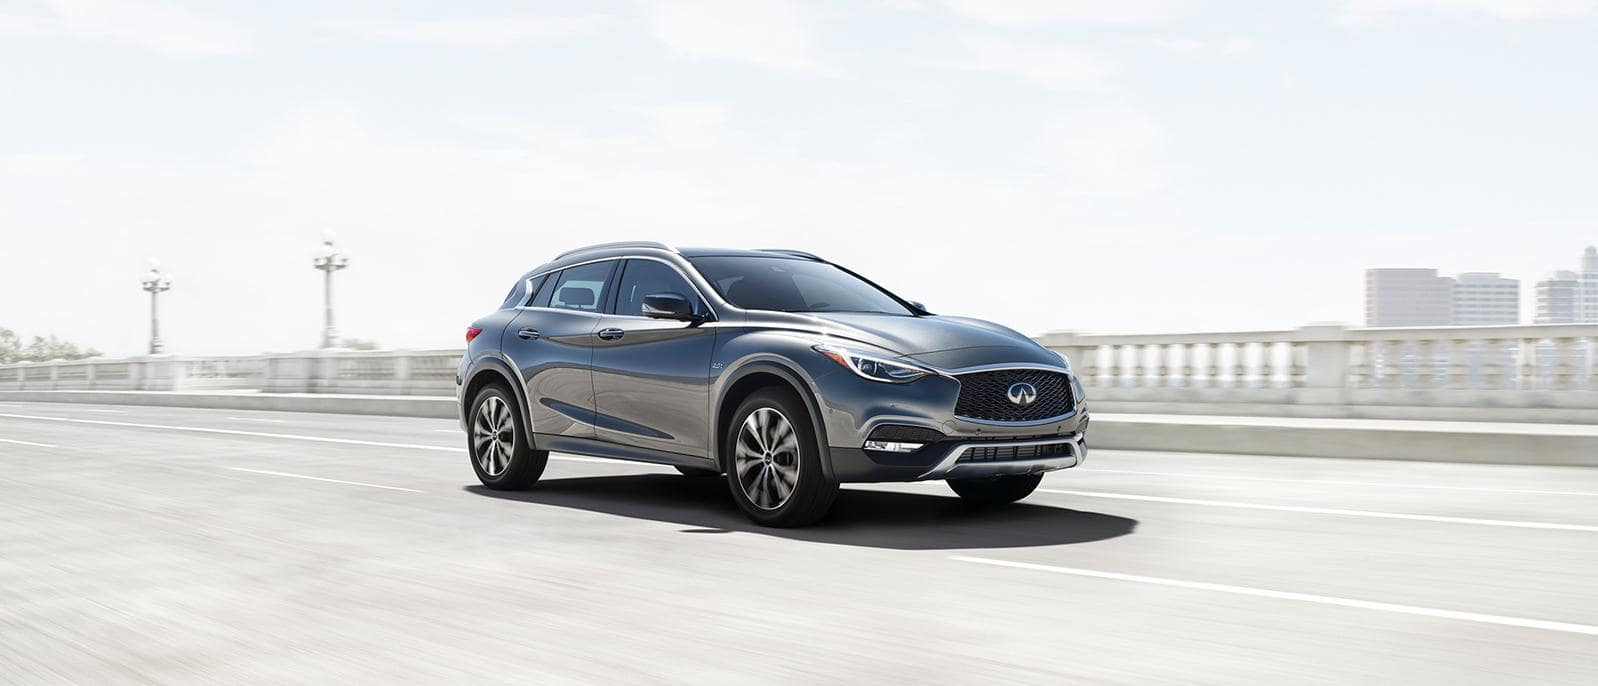 USED 2017 INFINITI QX30 FOR SALE IN CHICAGO, IL